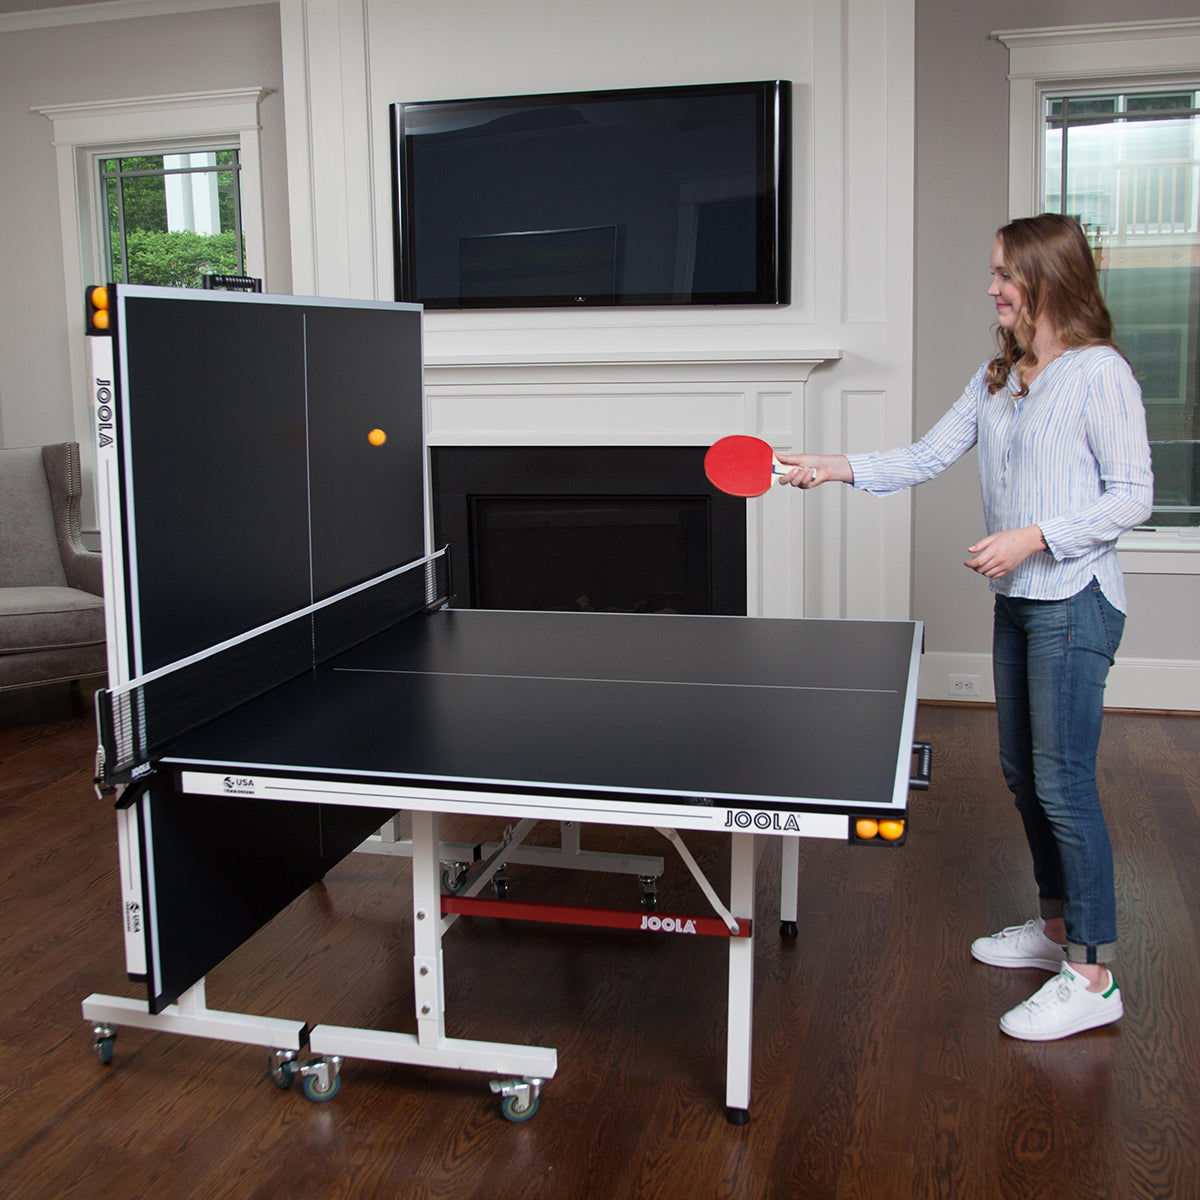 JOOLA DRIVE 1800 INDOOR TENNIS TABLE WITH NET SET (18MM THICK) gamingtables.ca